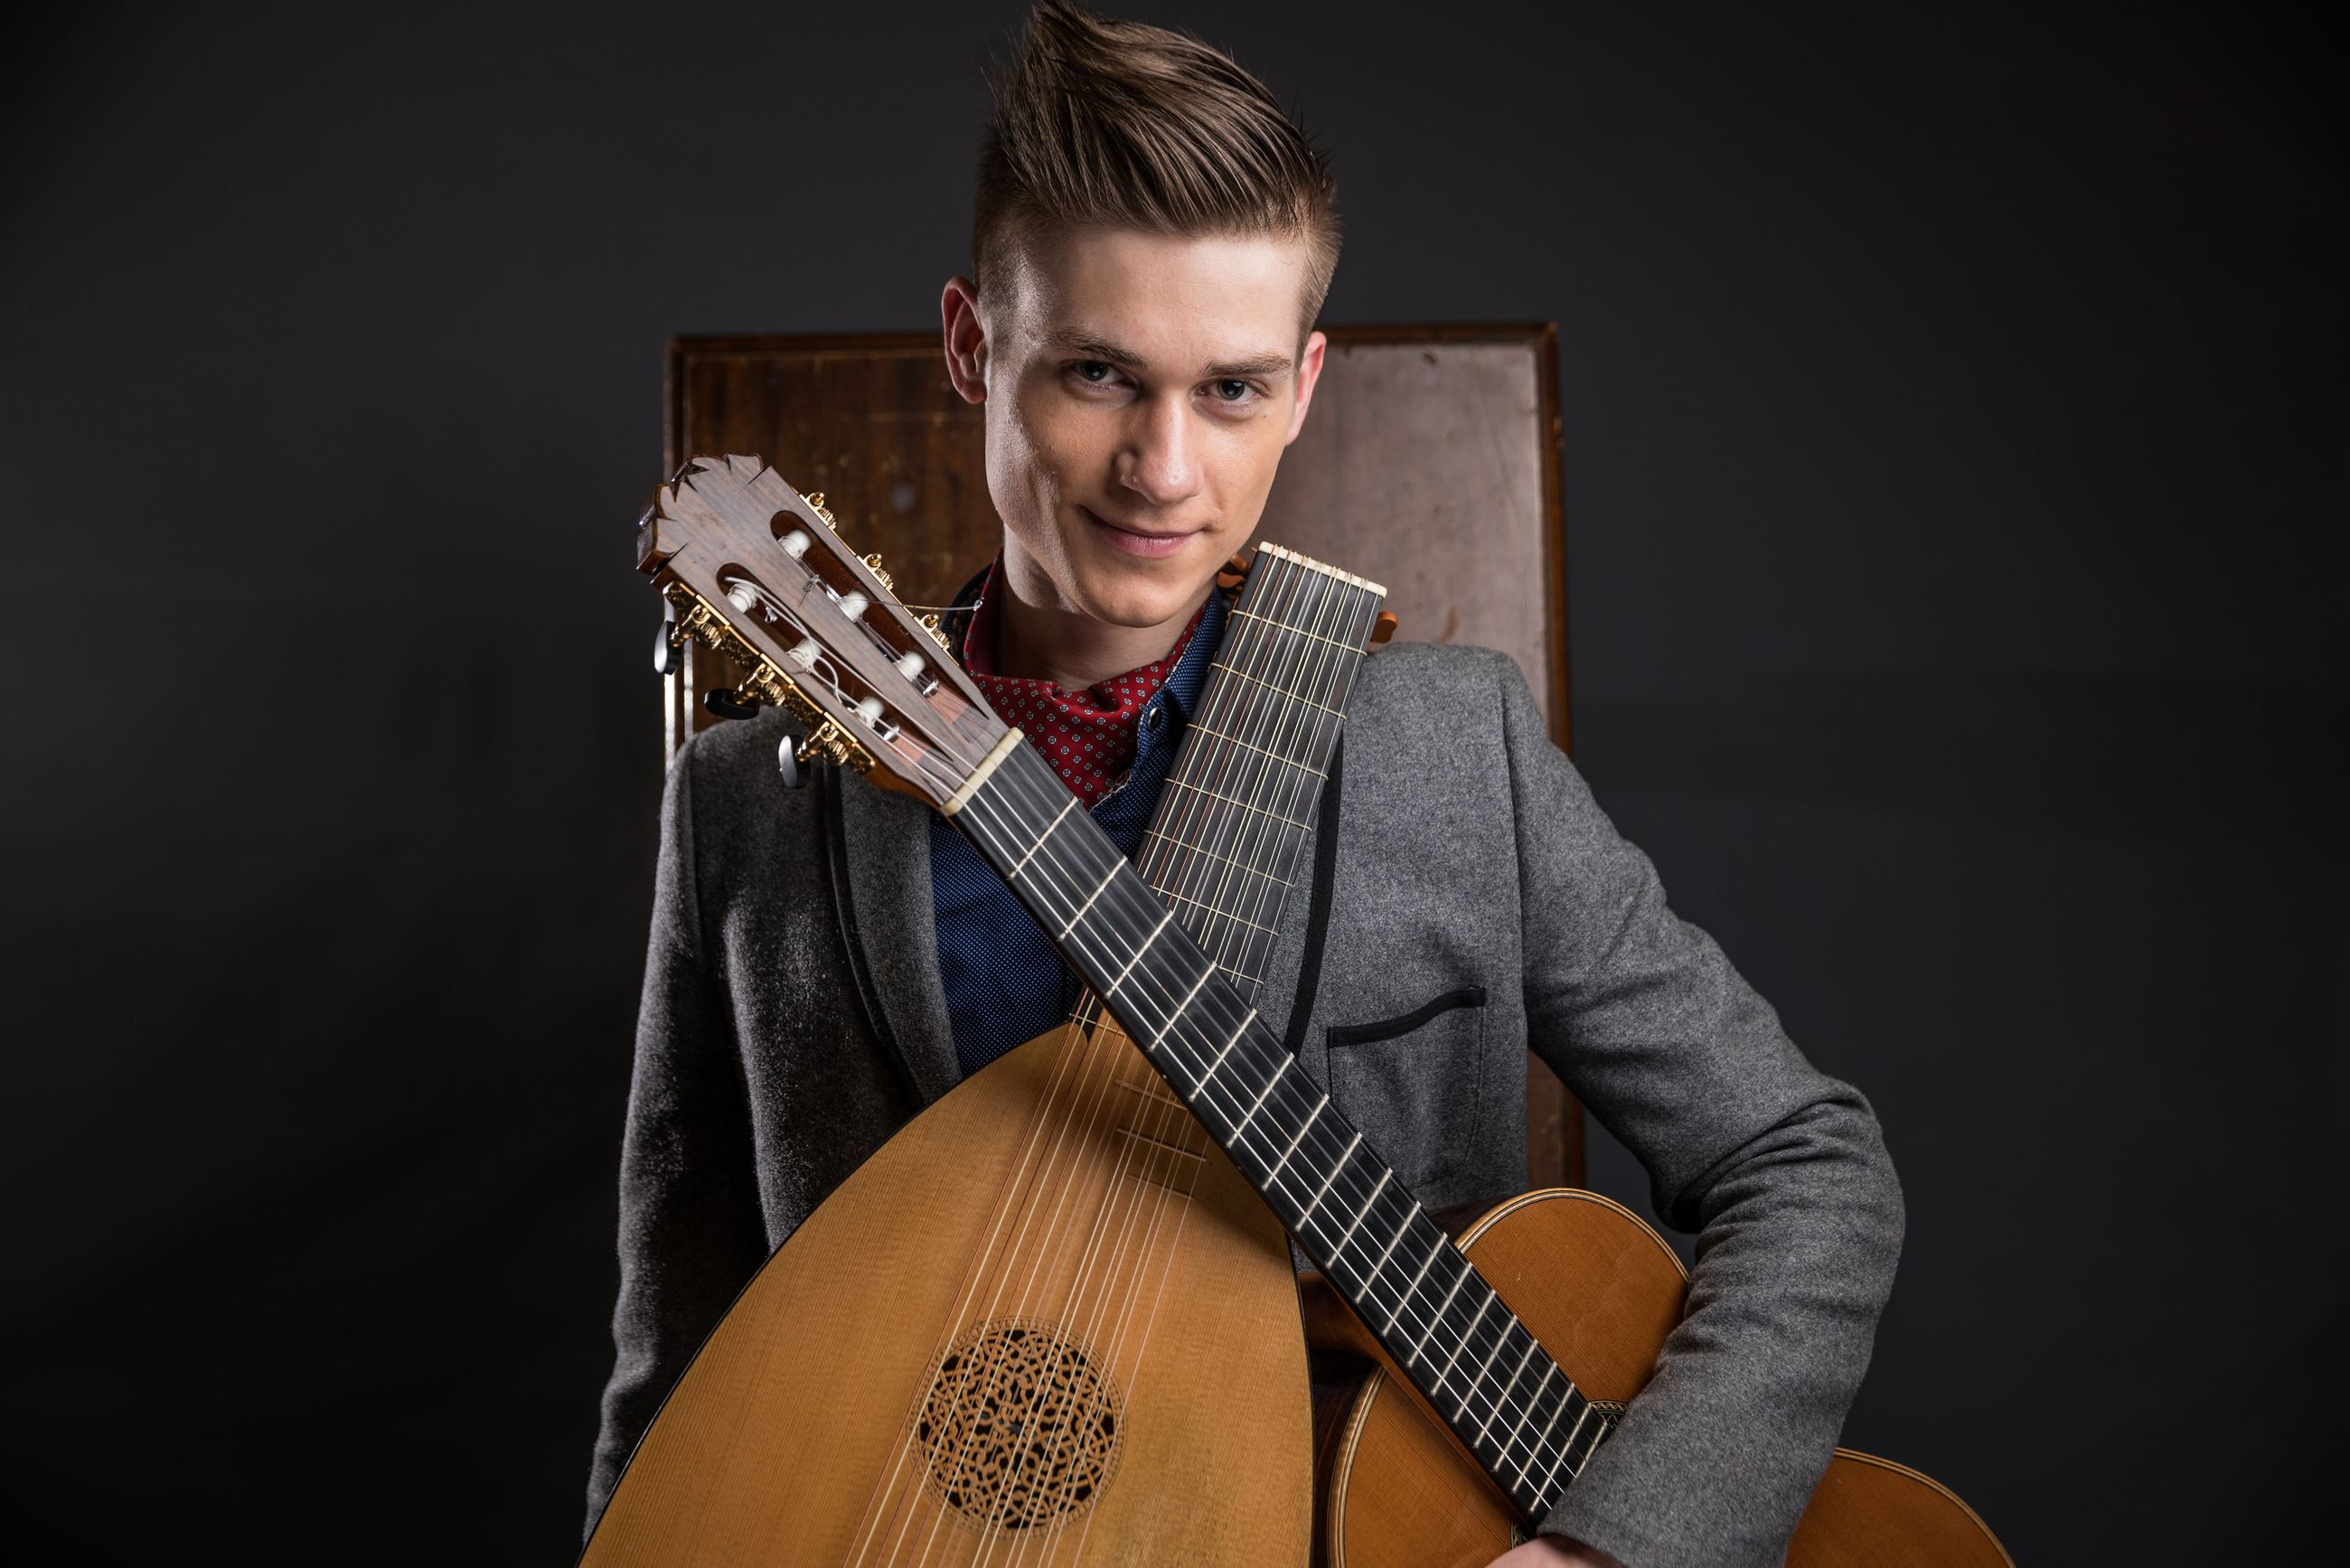 Image of musician in a grey suit holding 2 lutes